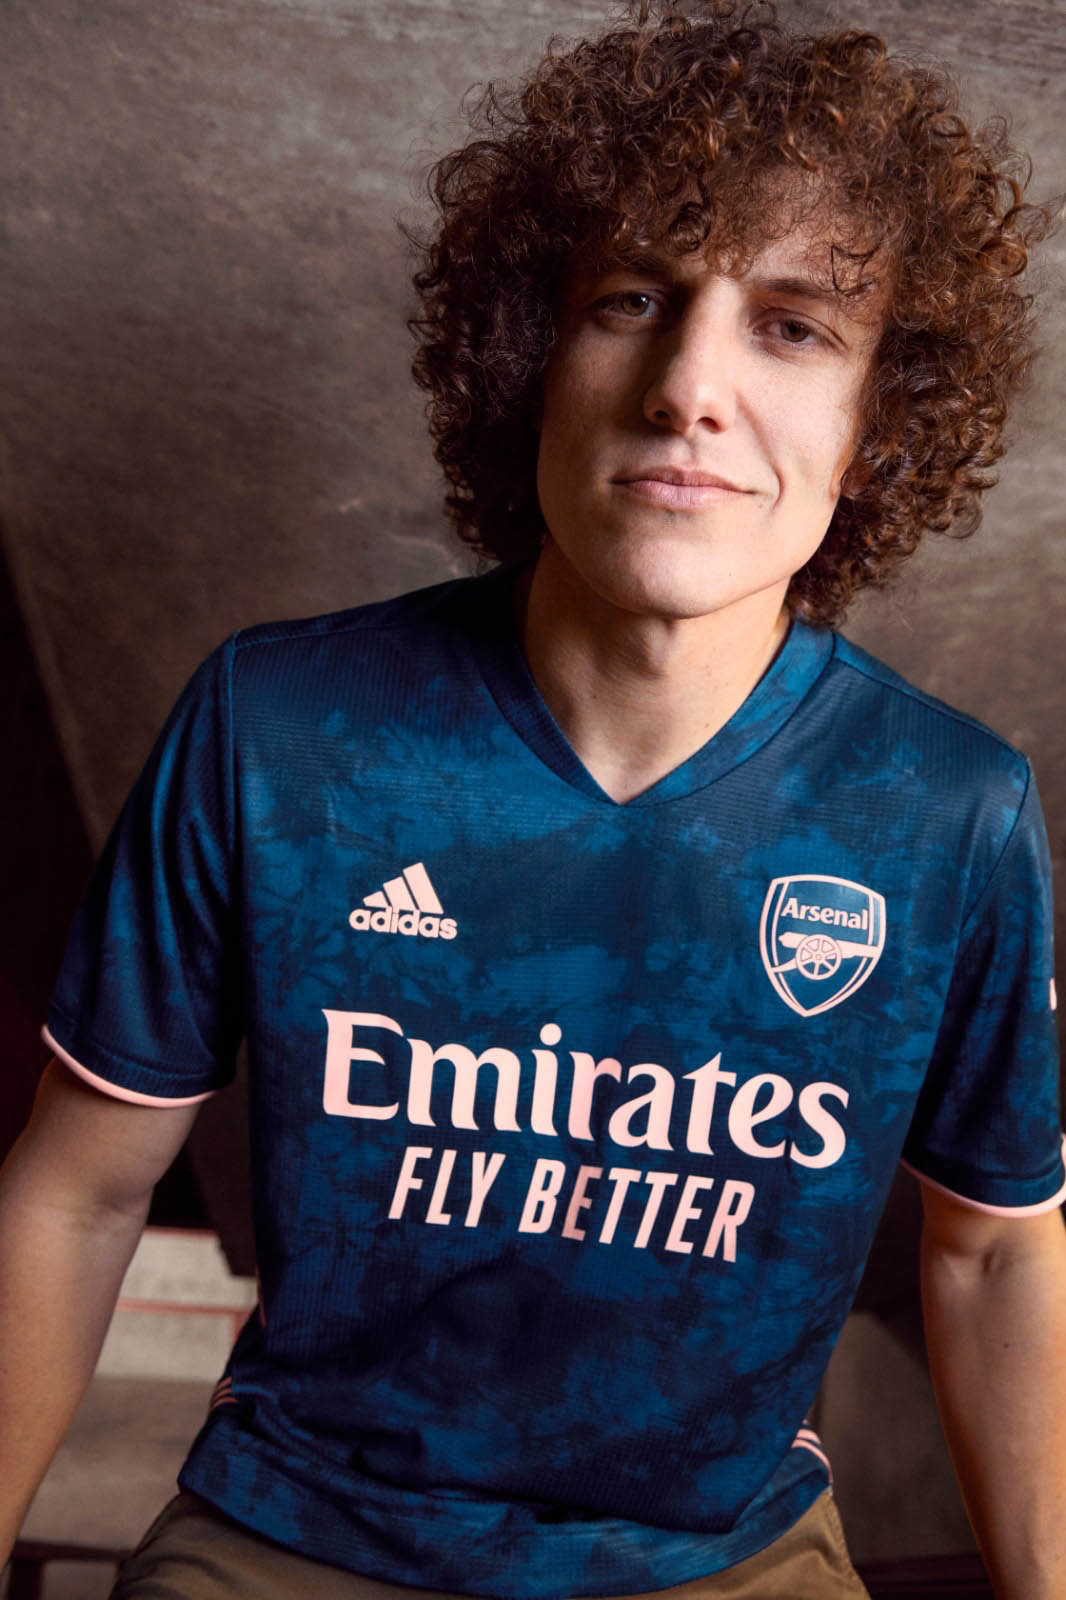 Terceira camisa do Arsenal 2020-2021 Adidas